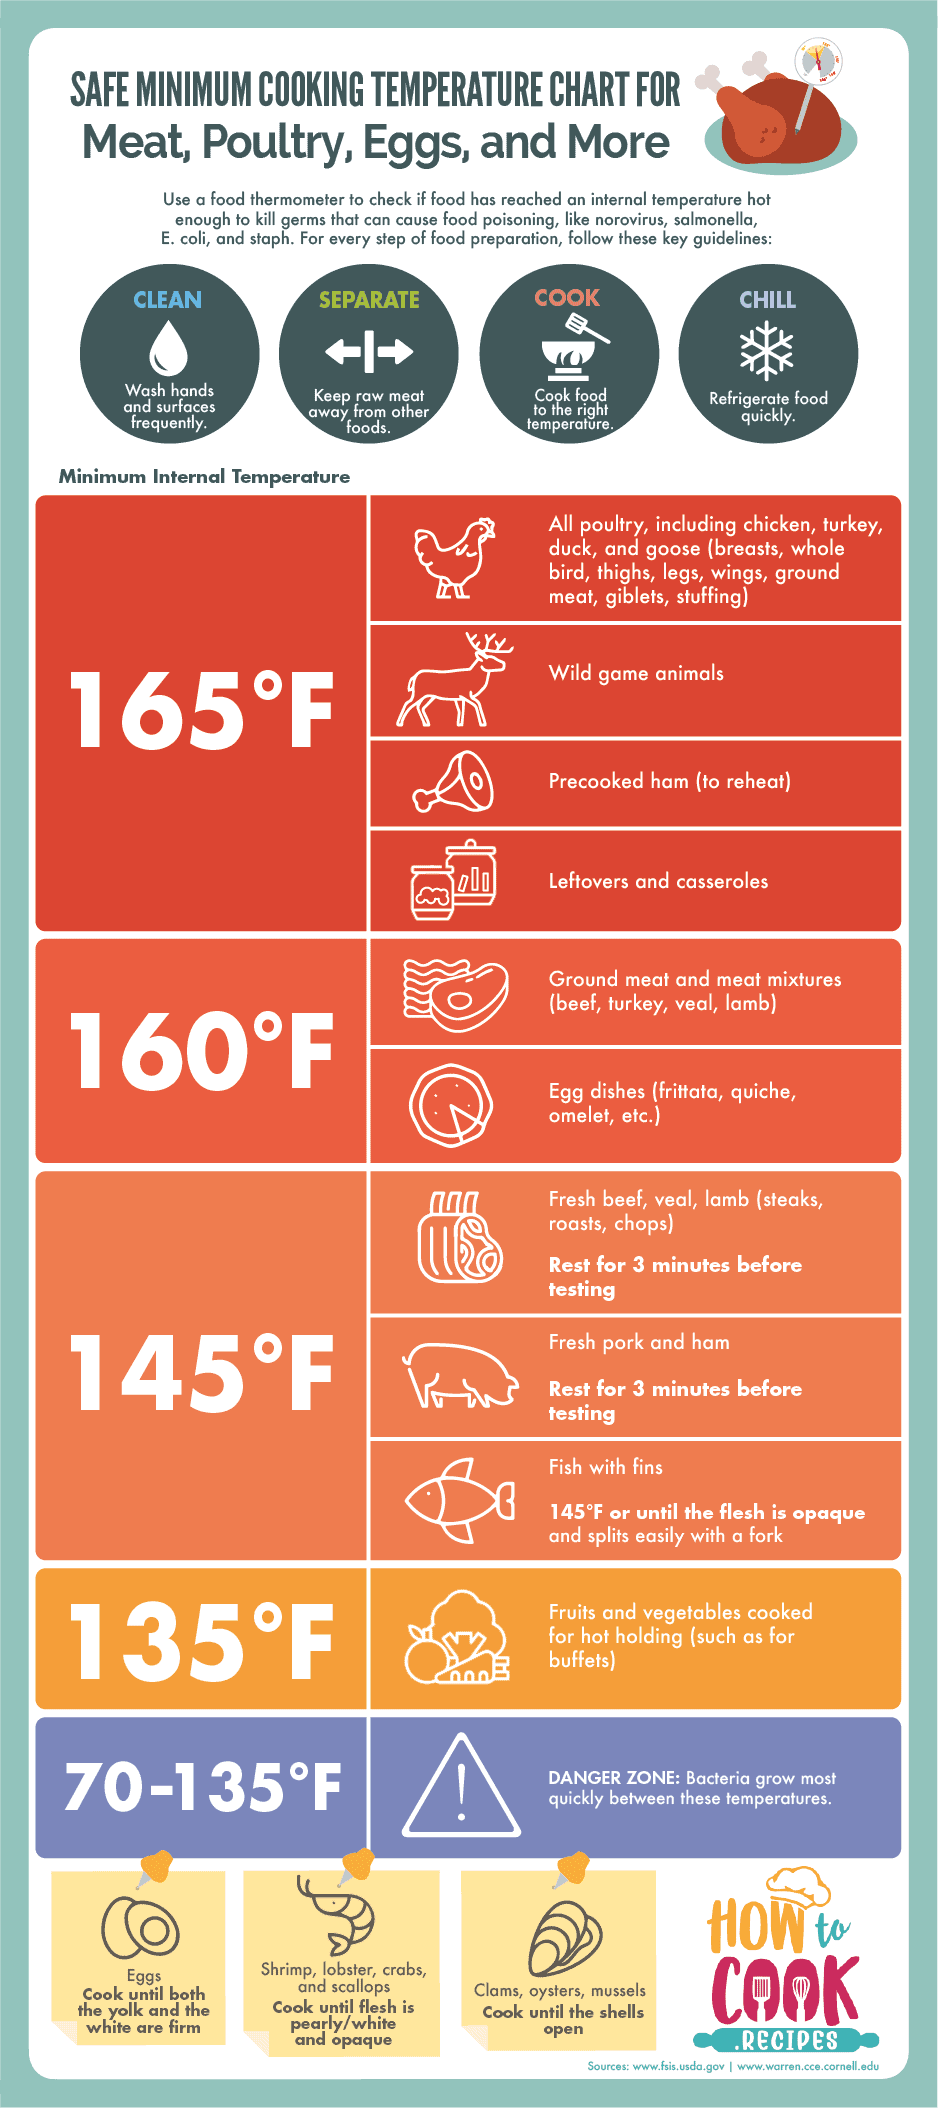 The Ultimate Safe Meat Cooking Temperature Chart for Meat, Poultry, Eggs, and More